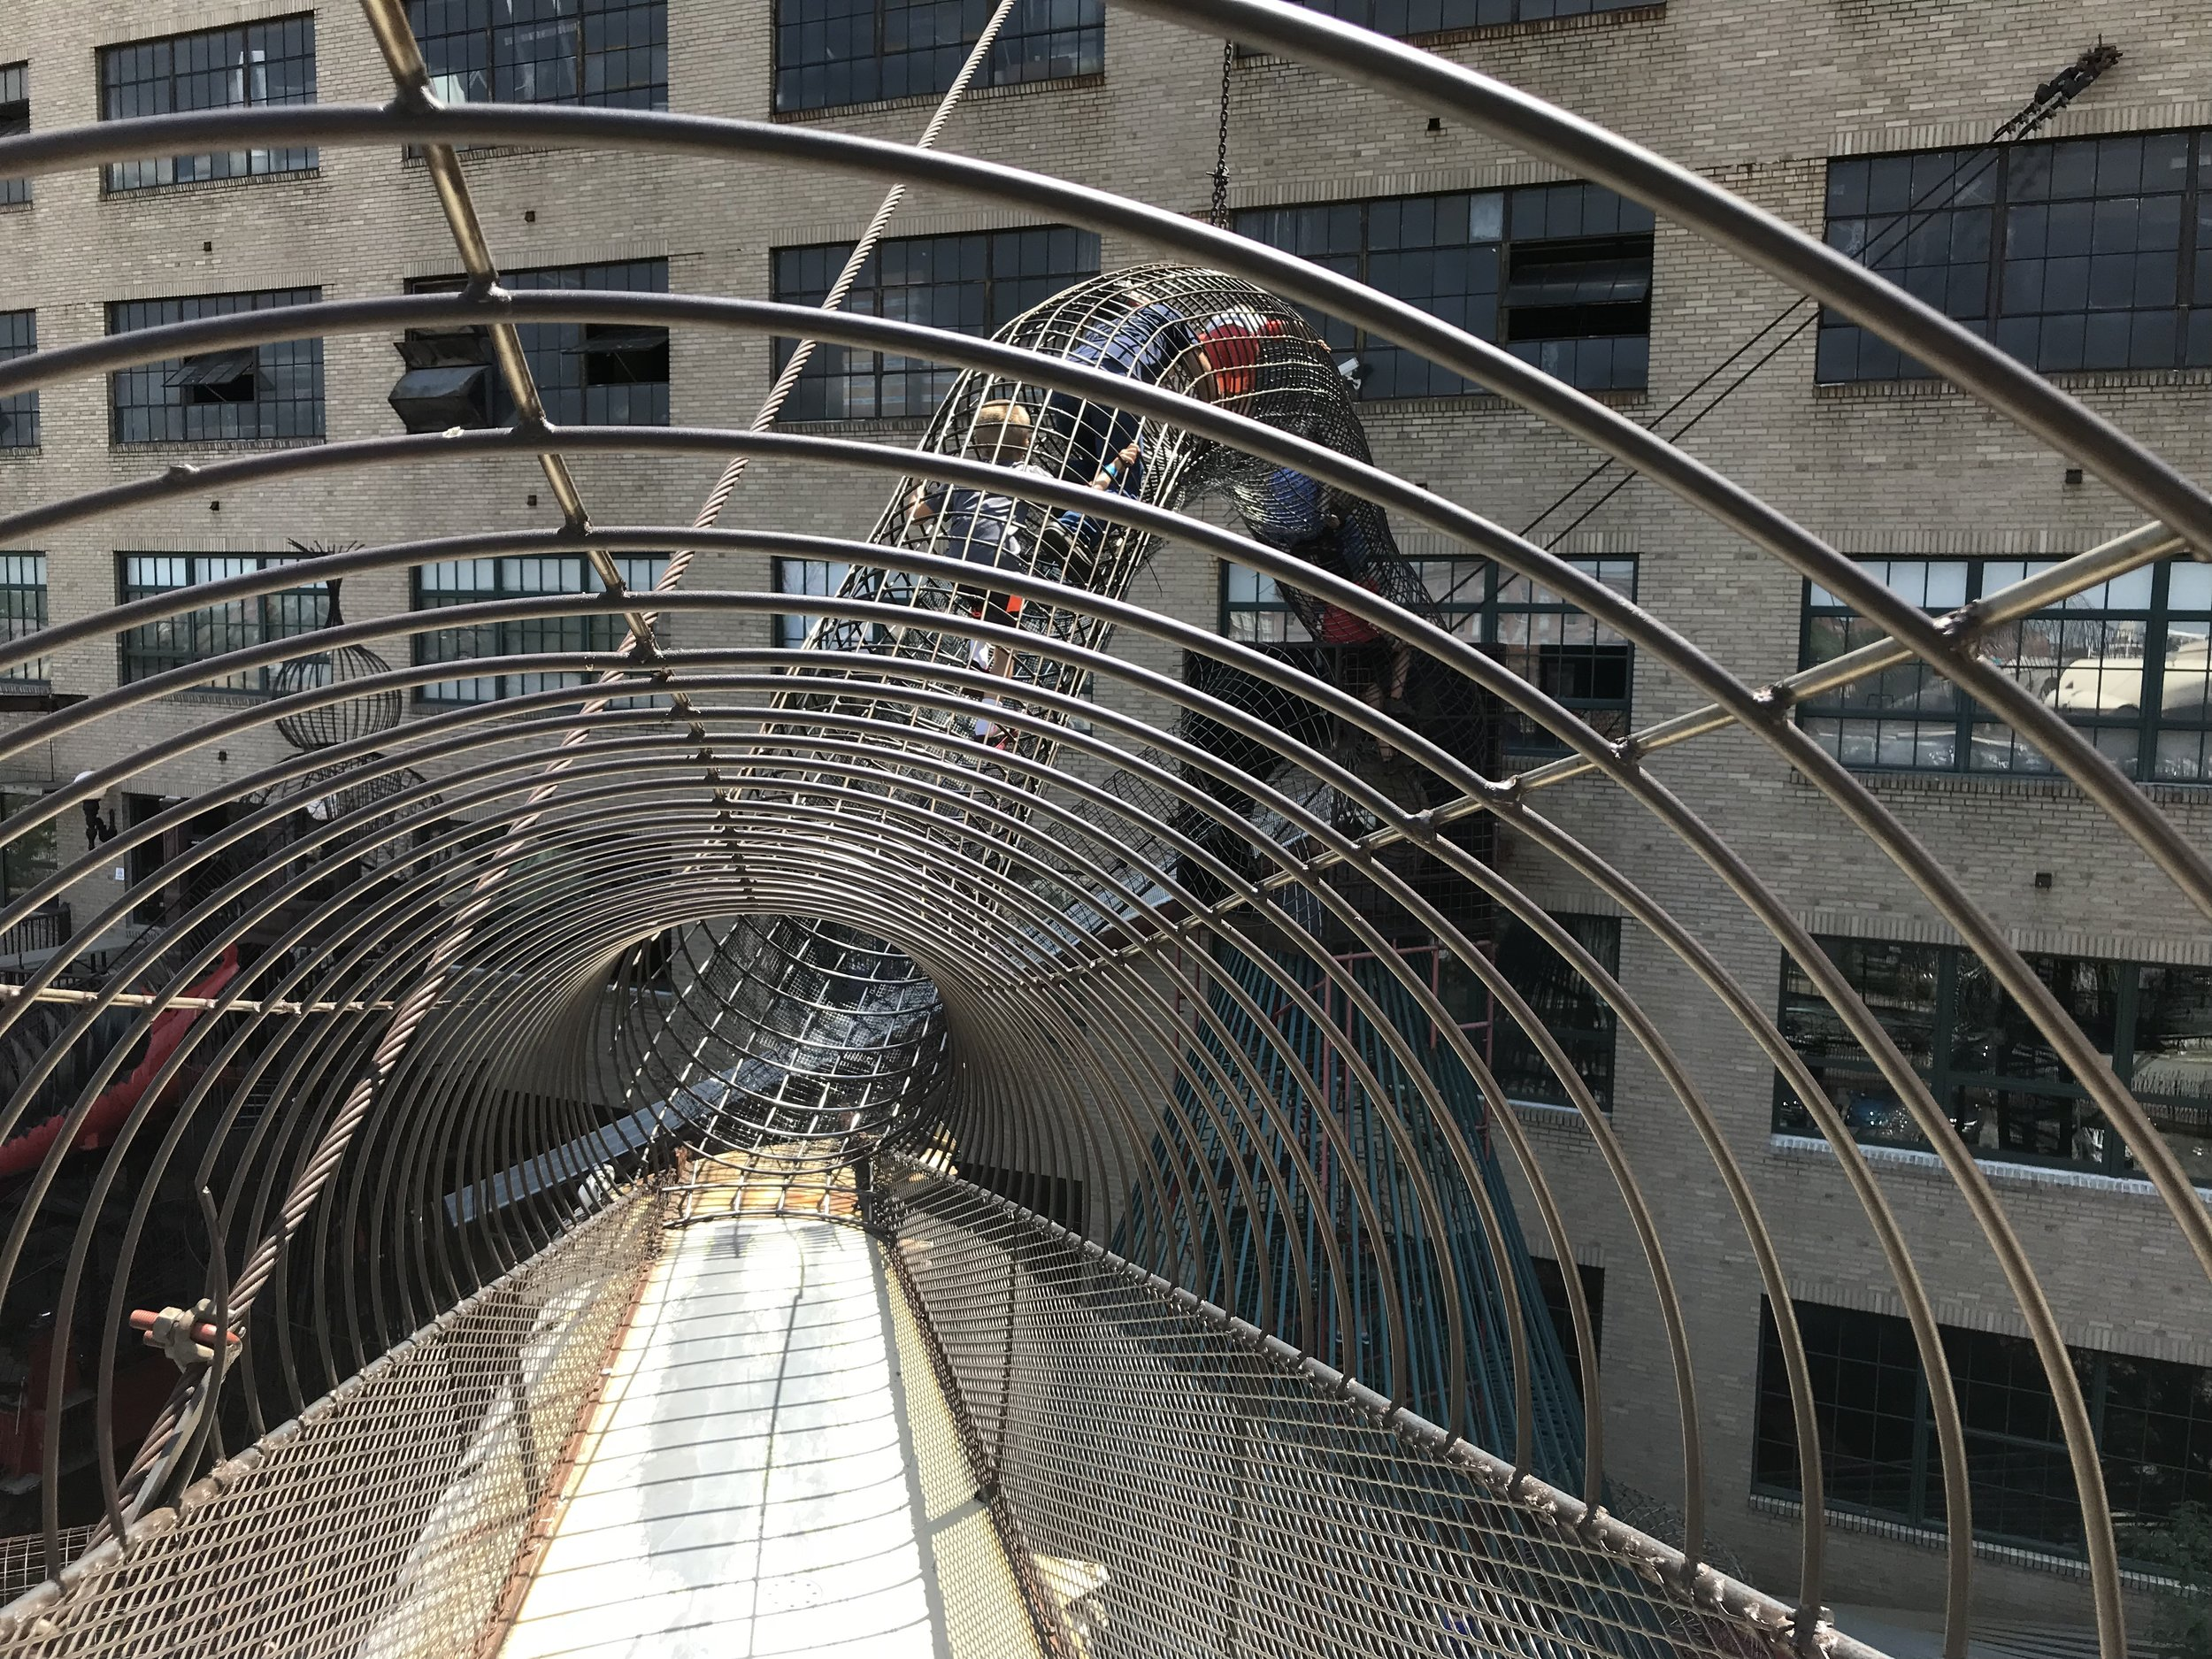 One of the climbing structures at City Museum